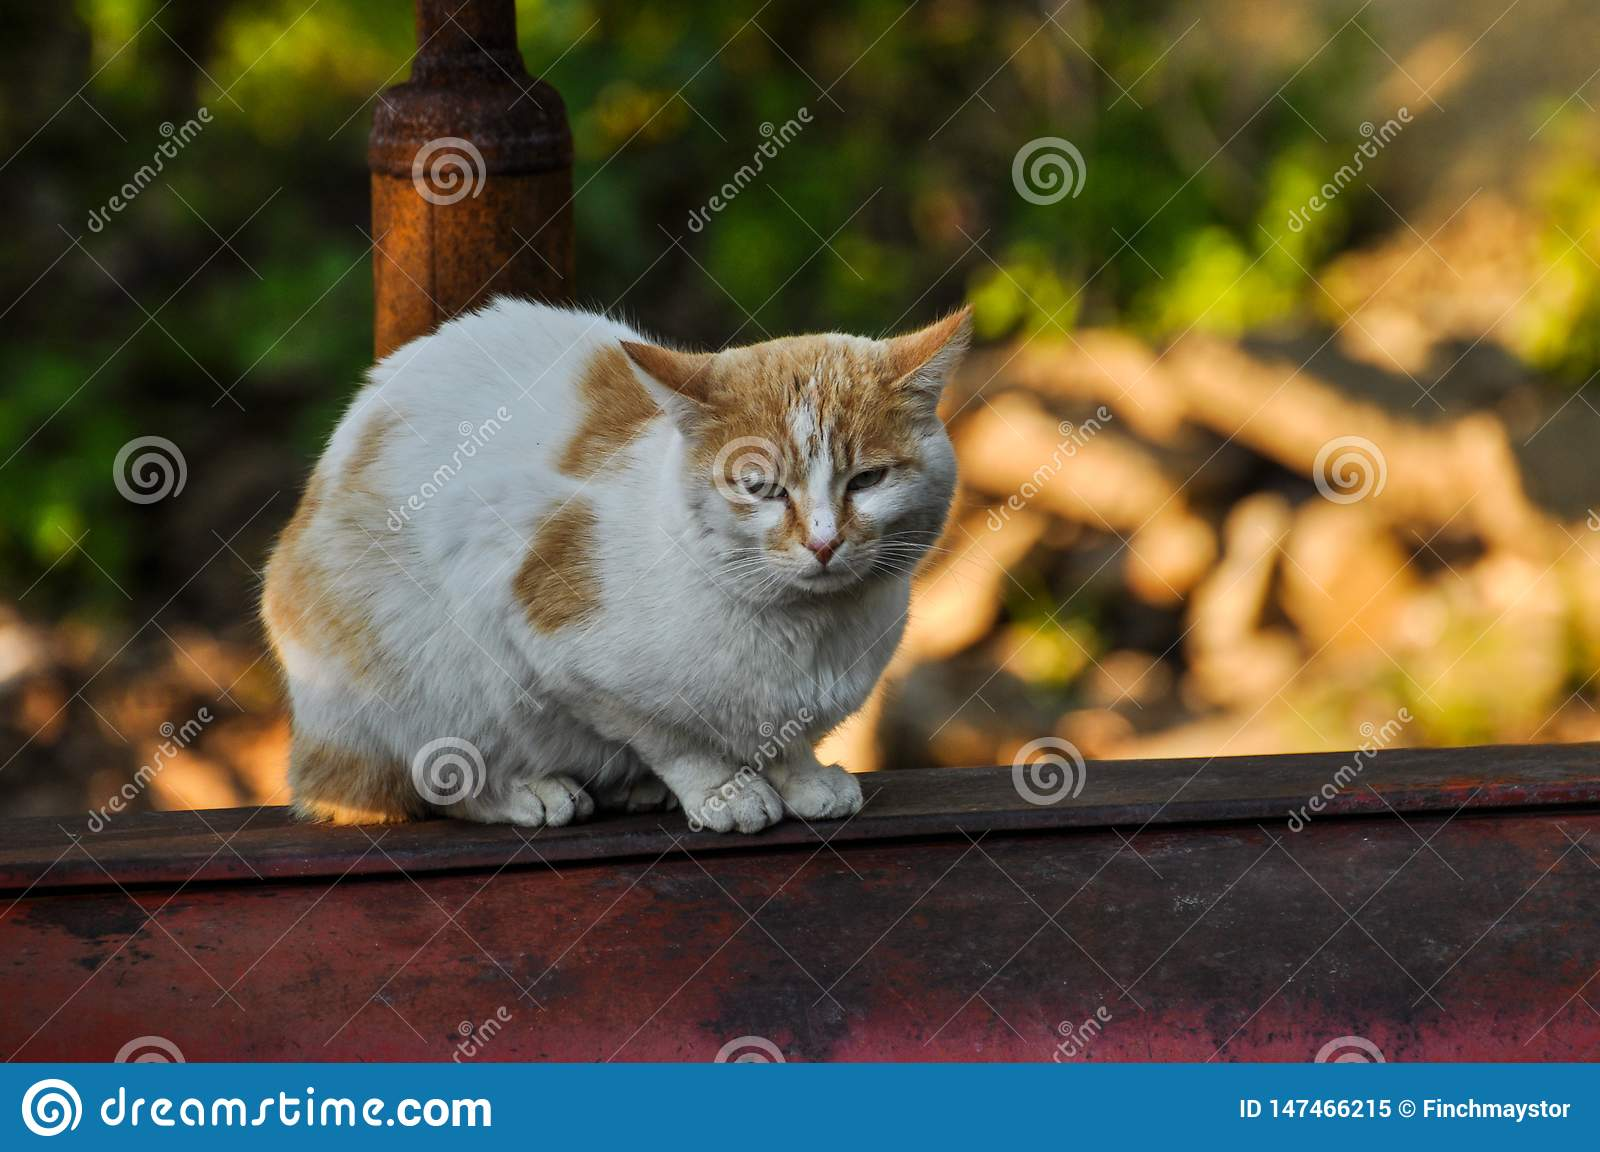 White yellow cat sits on a red tractor in nature.Domestic animal.Outdoor